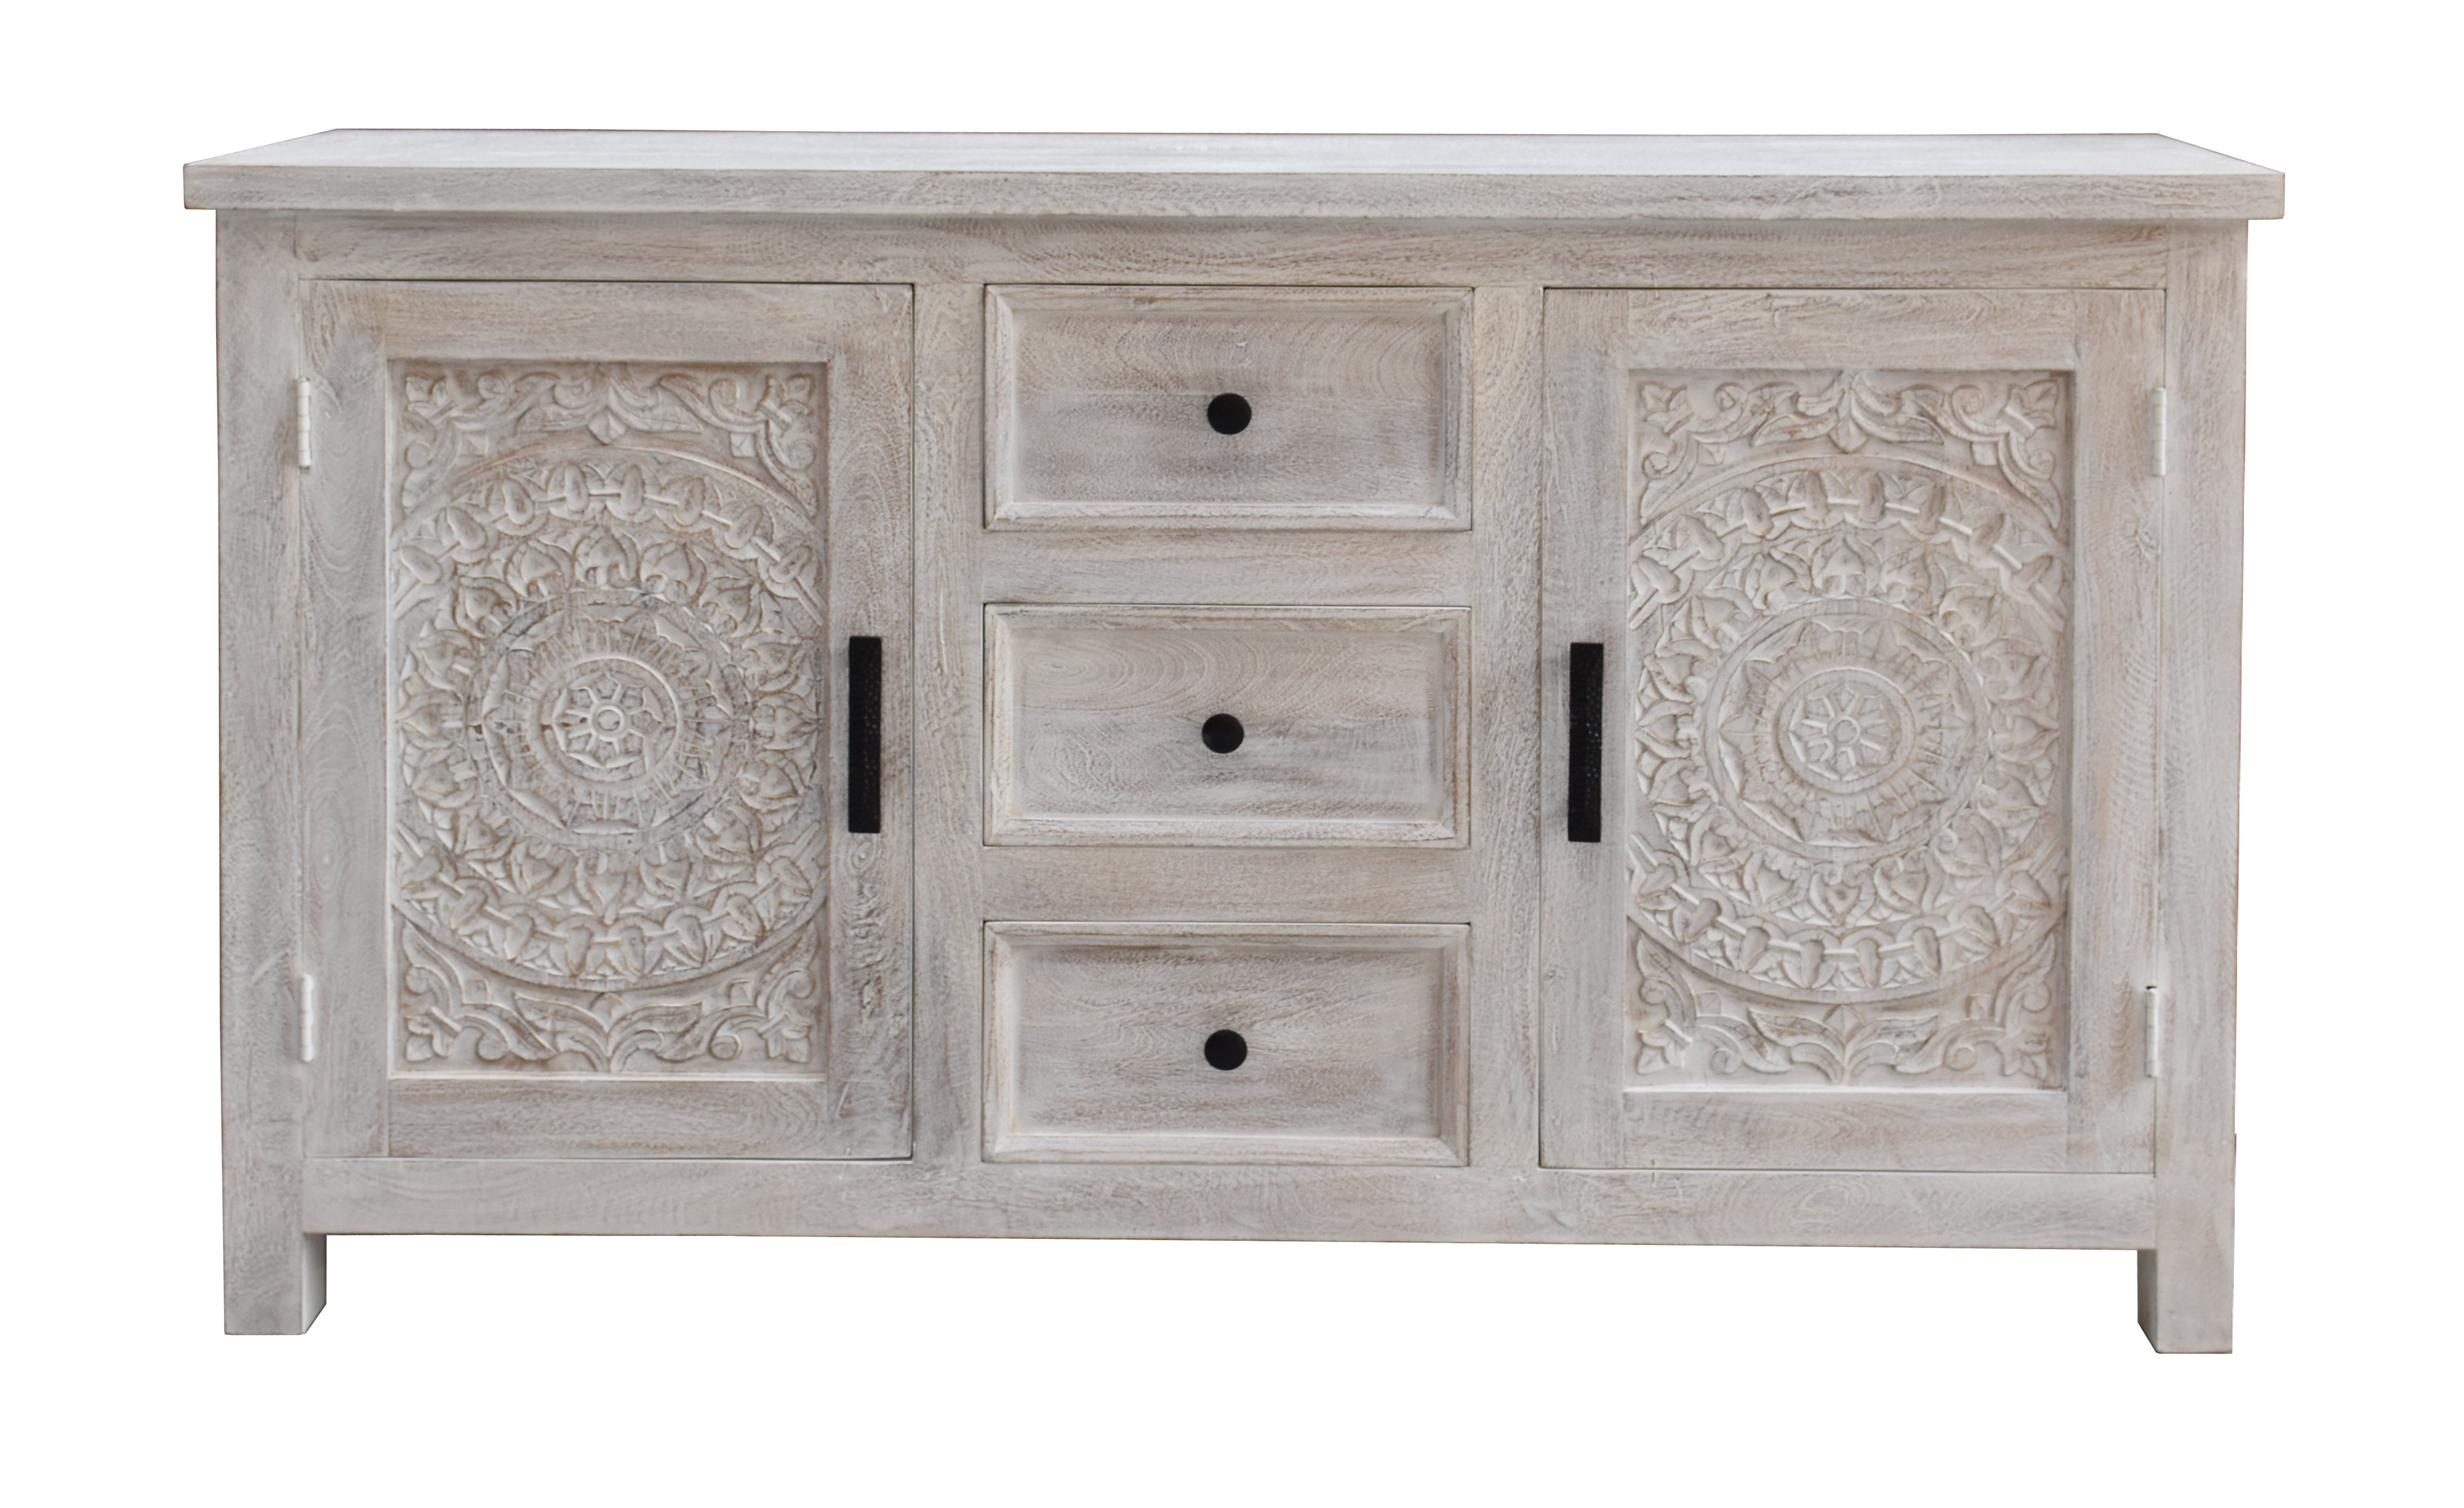 Farmhouse & Rustic Bungalow Rose Sideboards & Buffets Intended For Current Steinhatchee Reclaimed Pine 4 Door Sideboards (Gallery 6 of 20)